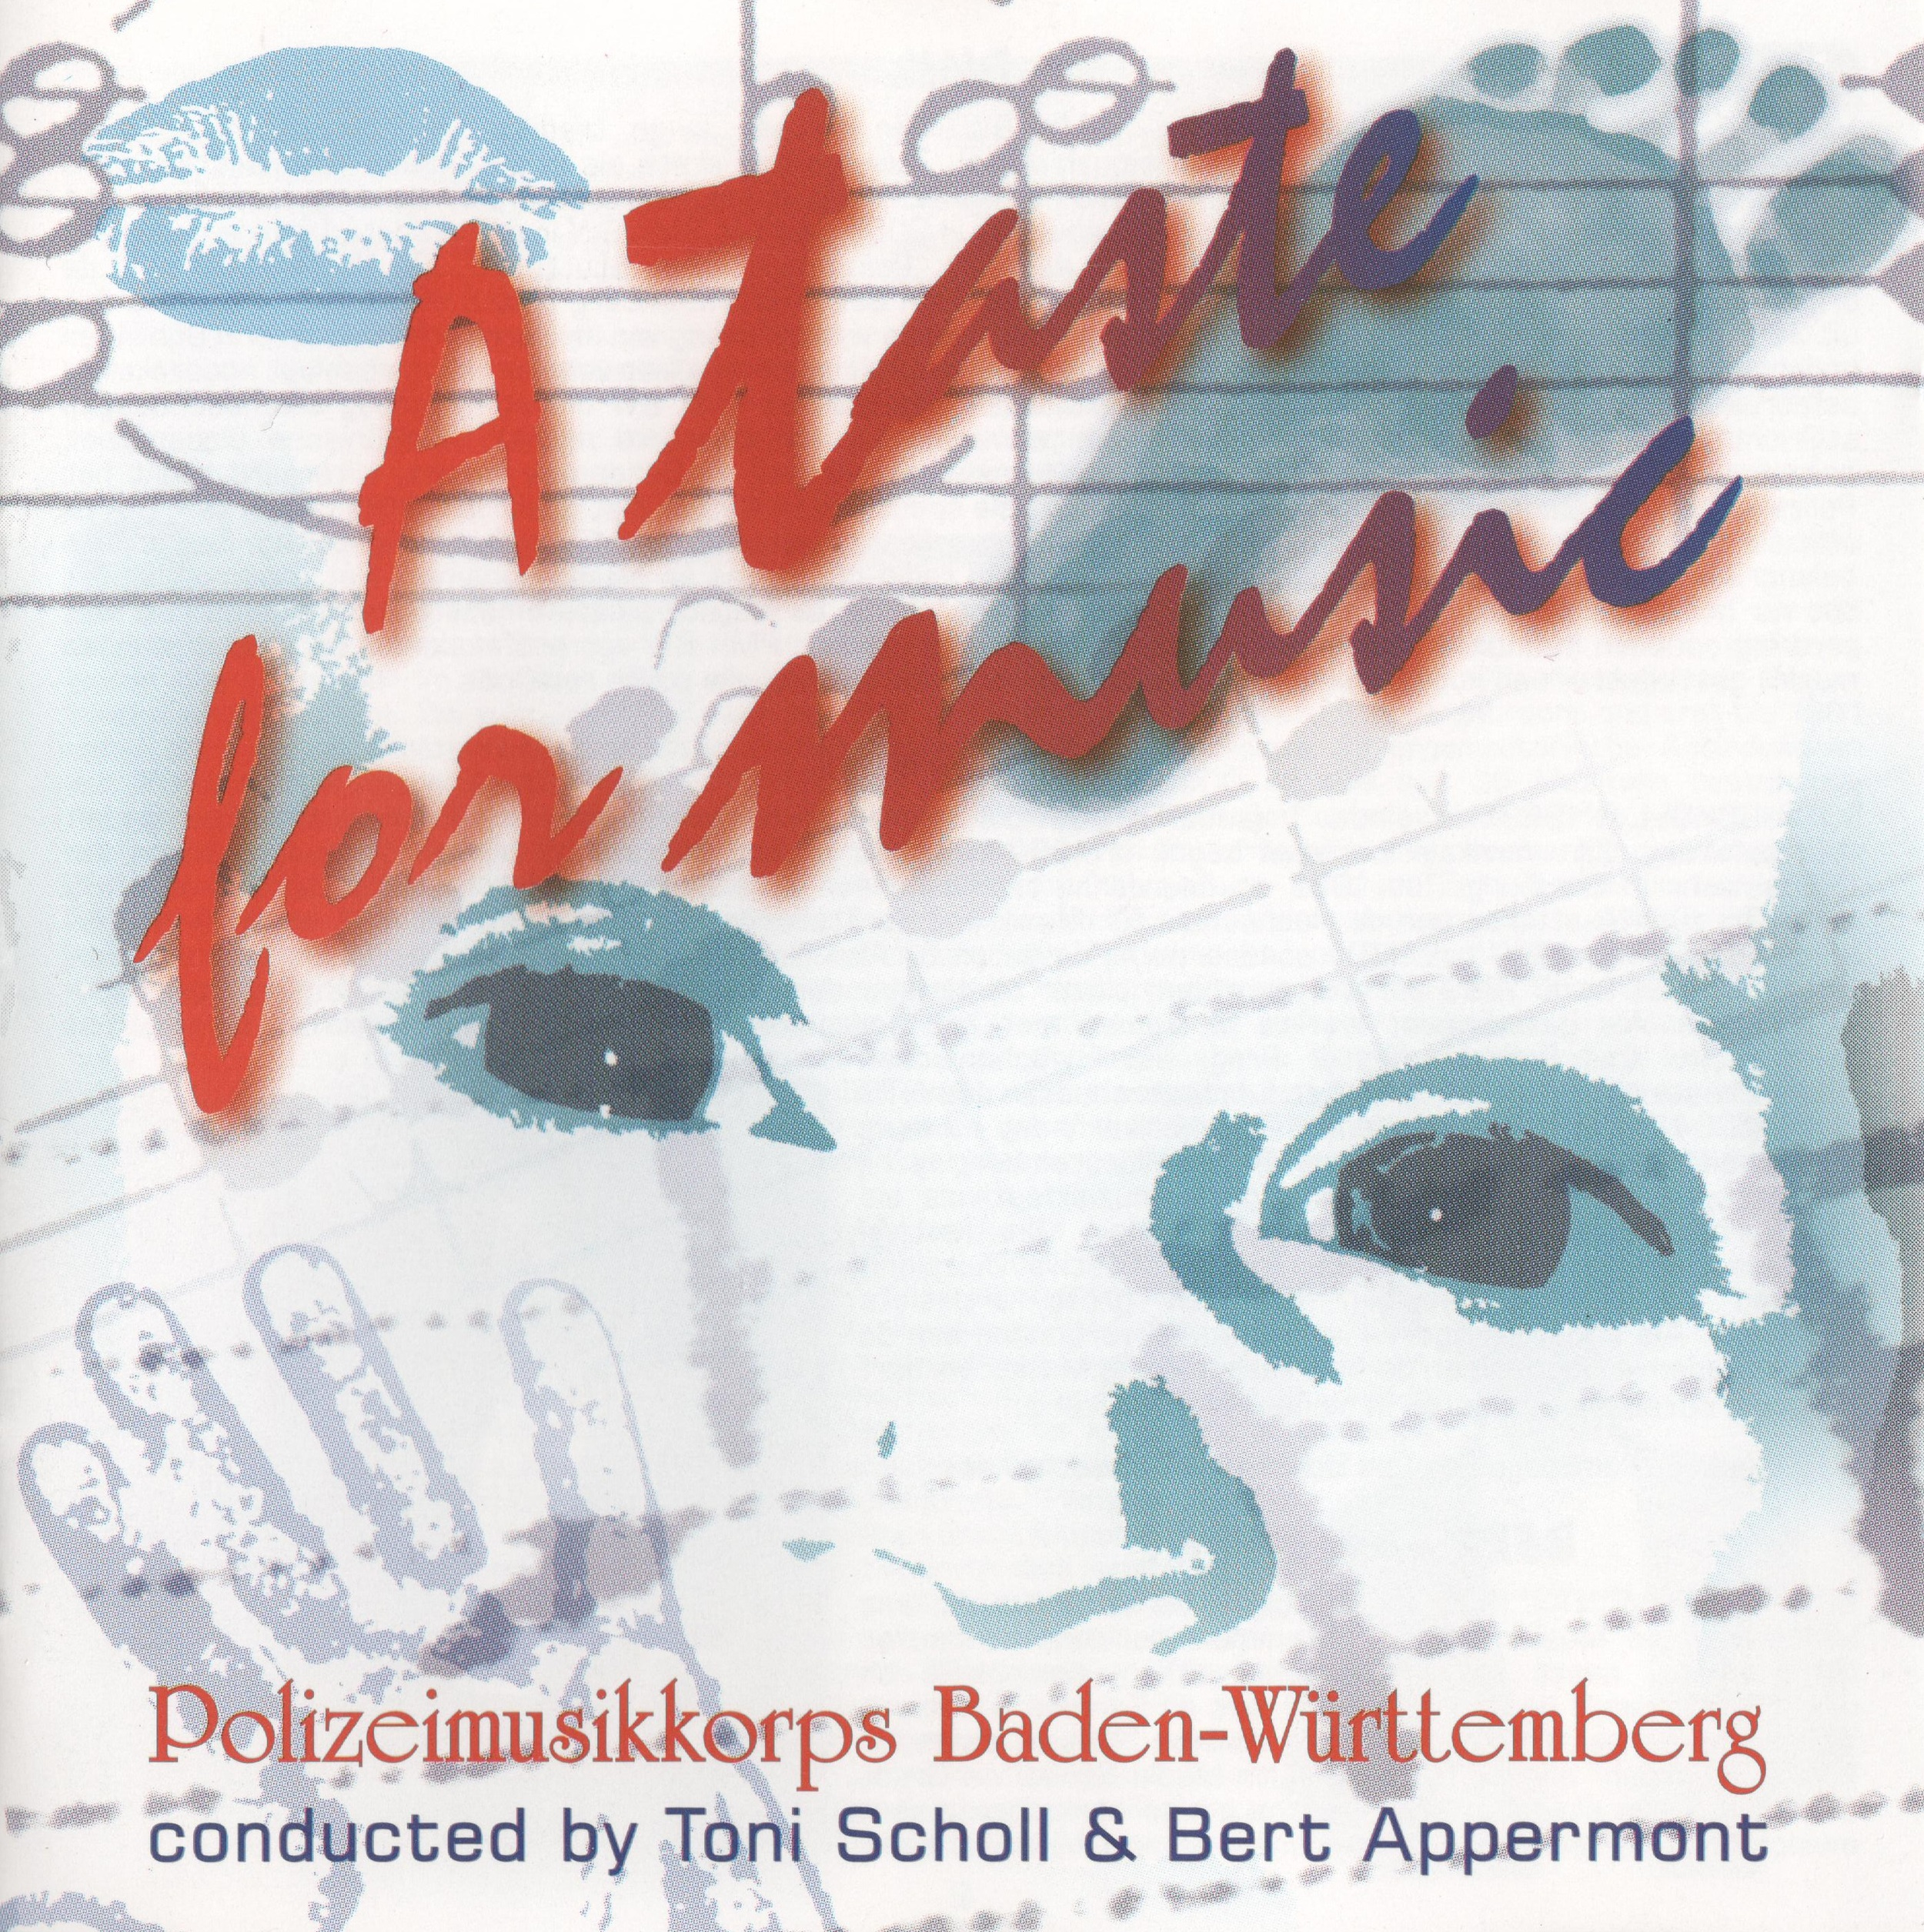 Beriato (2005) A Taste for Music. The titletrack is my composition for concertband 'A taste for Music'.